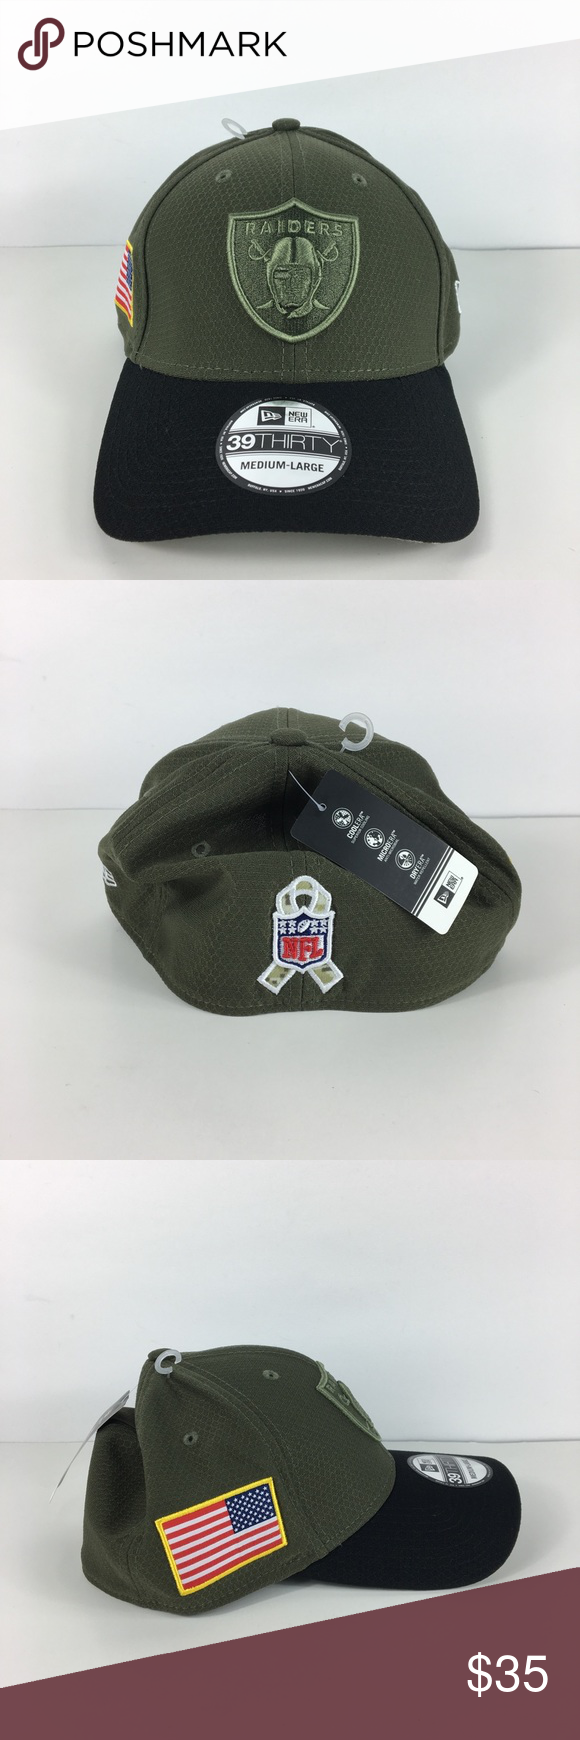 Oakland Raiders Salute to Service New Era Hat NFL Oakland Raiders Salute to Service New Era 39THIRTY NFL Stretch Hat Sz M/L 2017 Brand new S-1 Accessories Hats #salutetoservice Oakland Raiders Salute to Service New Era Hat NFL Oakland Raiders Salute to Service New Era 39THIRTY NFL Stretch Hat Sz M/L 2017 Brand new S-1 Accessories Hats #salutetoservice Oakland Raiders Salute to Service New Era Hat NFL Oakland Raiders Salute to Service New Era 39THIRTY NFL Stretch Hat Sz M/L 2017 Brand new S-1 Acc #salutetoservice